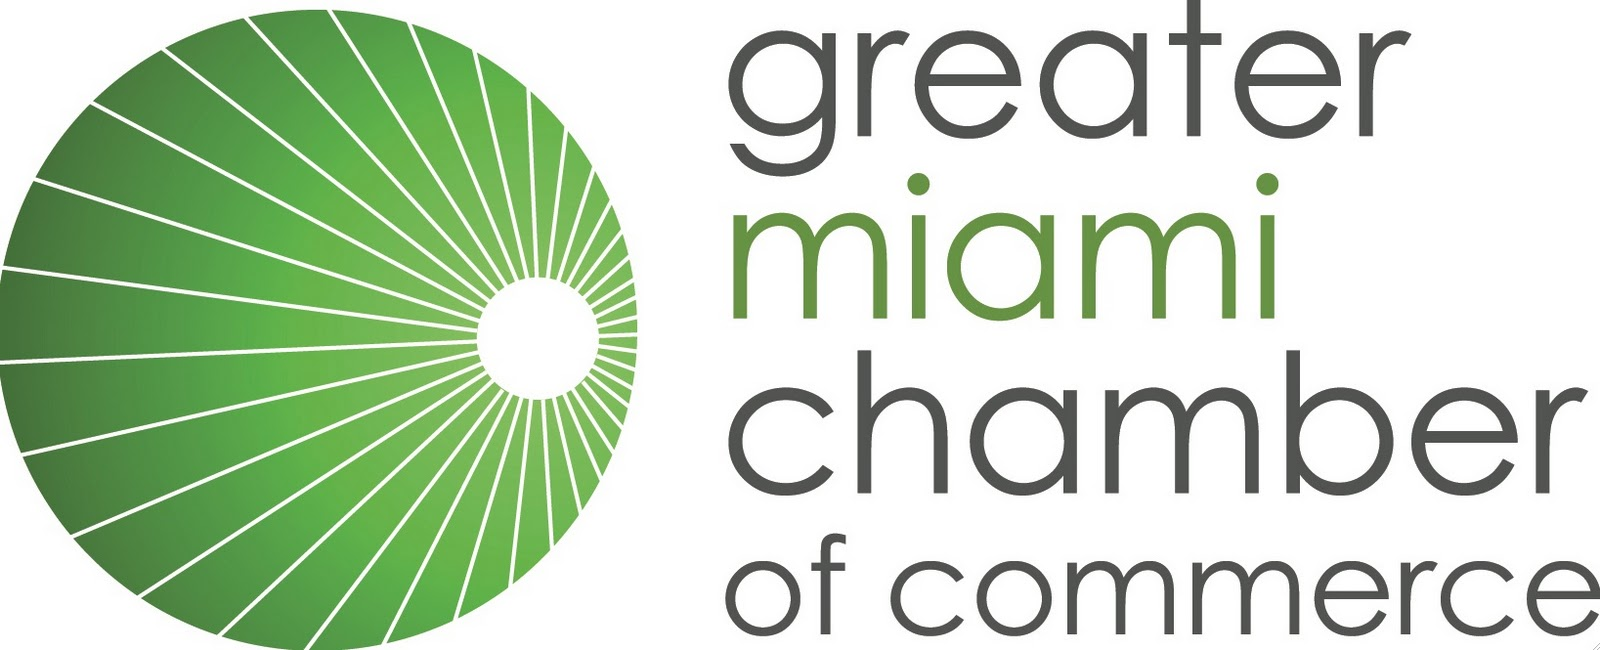 Partnered with the Greater Miami Chamber of Commerce